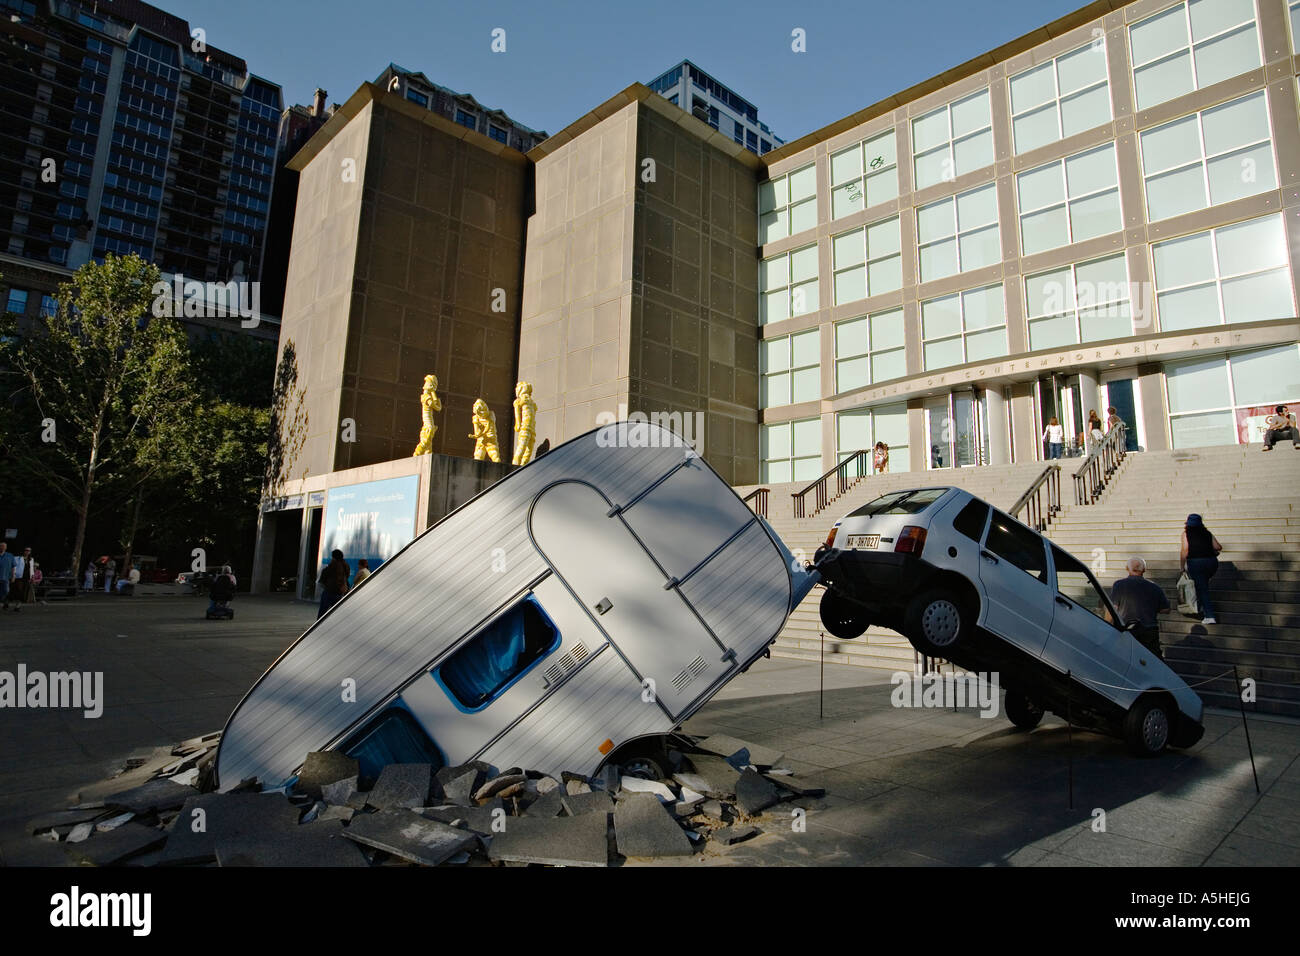 ILLINOIS Chicago Car and RV trailer temporary exhibit outside Stock ...